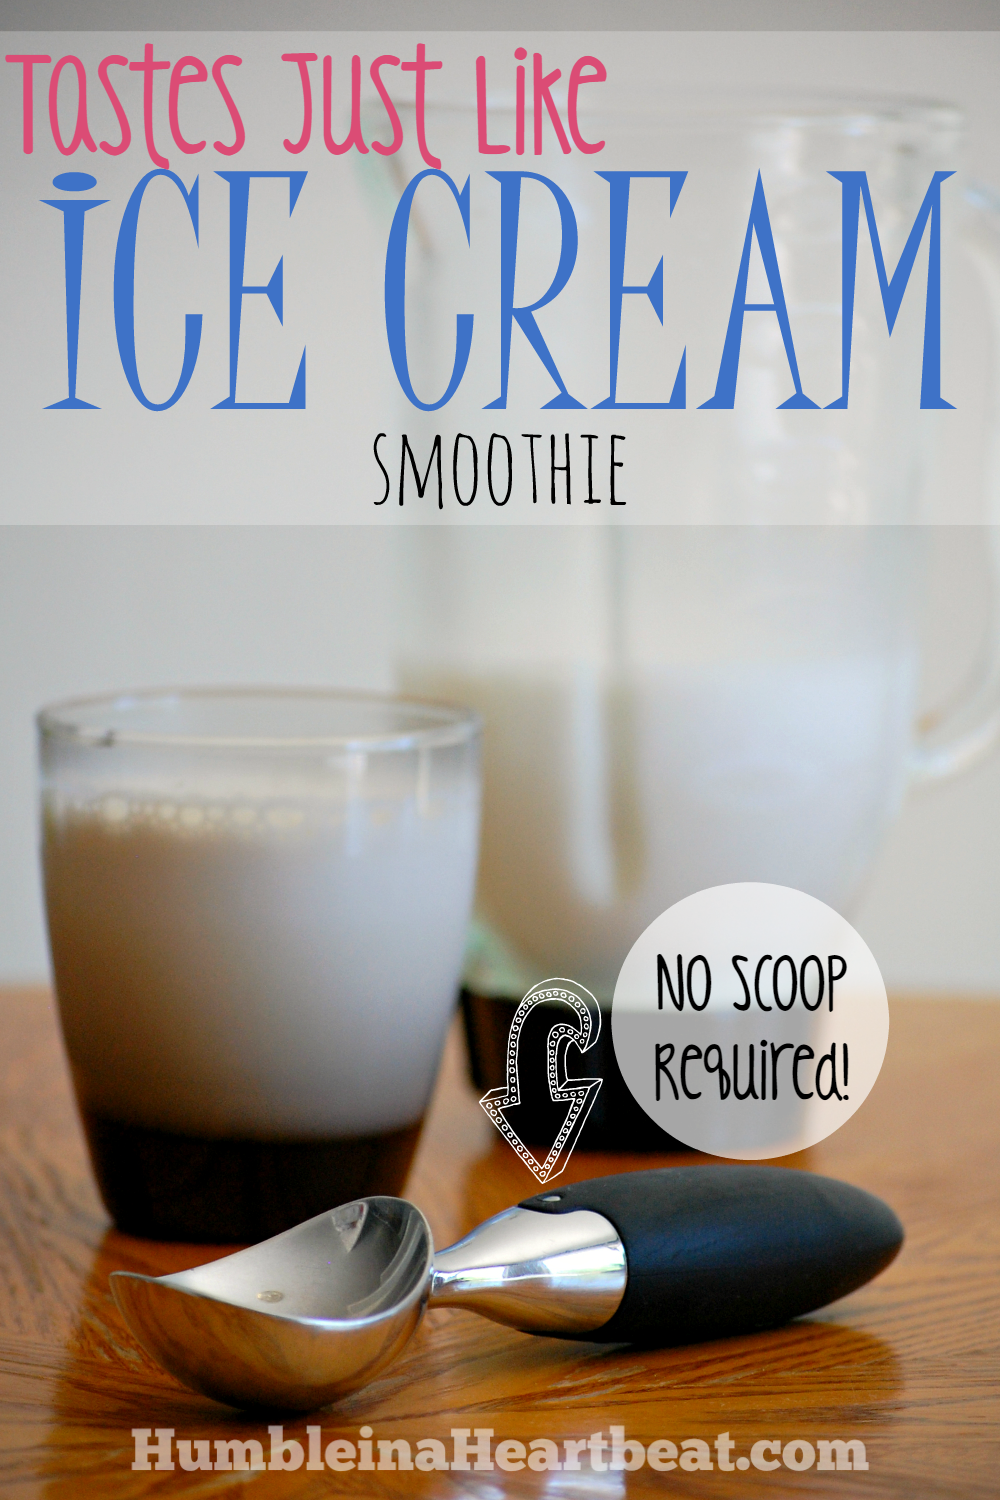 This smoothie tastes just like ice cream, hence the name. You can make it to your liking with different fruit and extracts. What a delicious way to enjoy ice cream on a hot summer day!